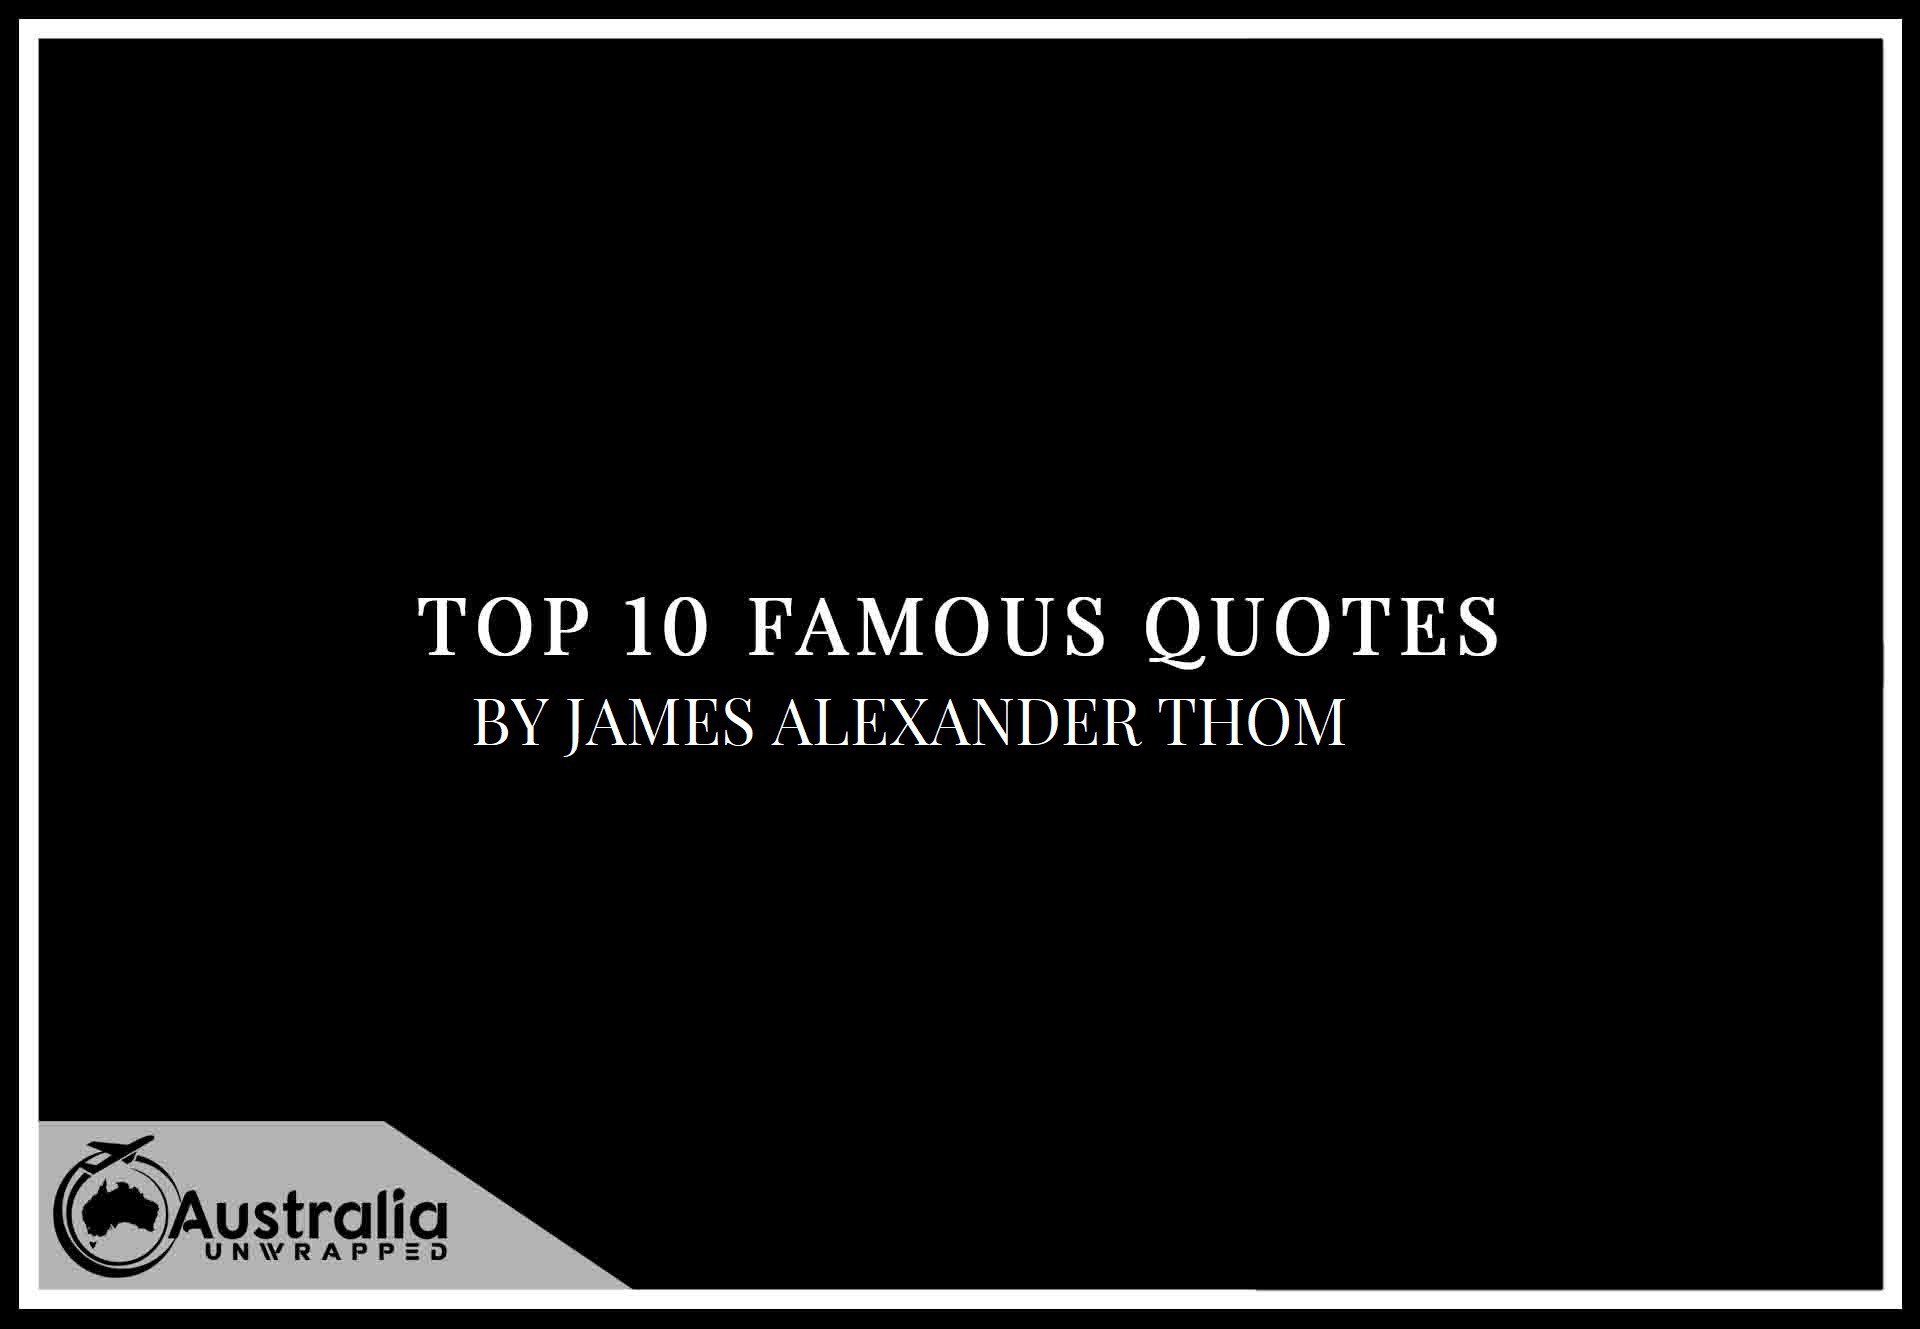 Top 10 Famous Quotes by Author James Alexander Thom